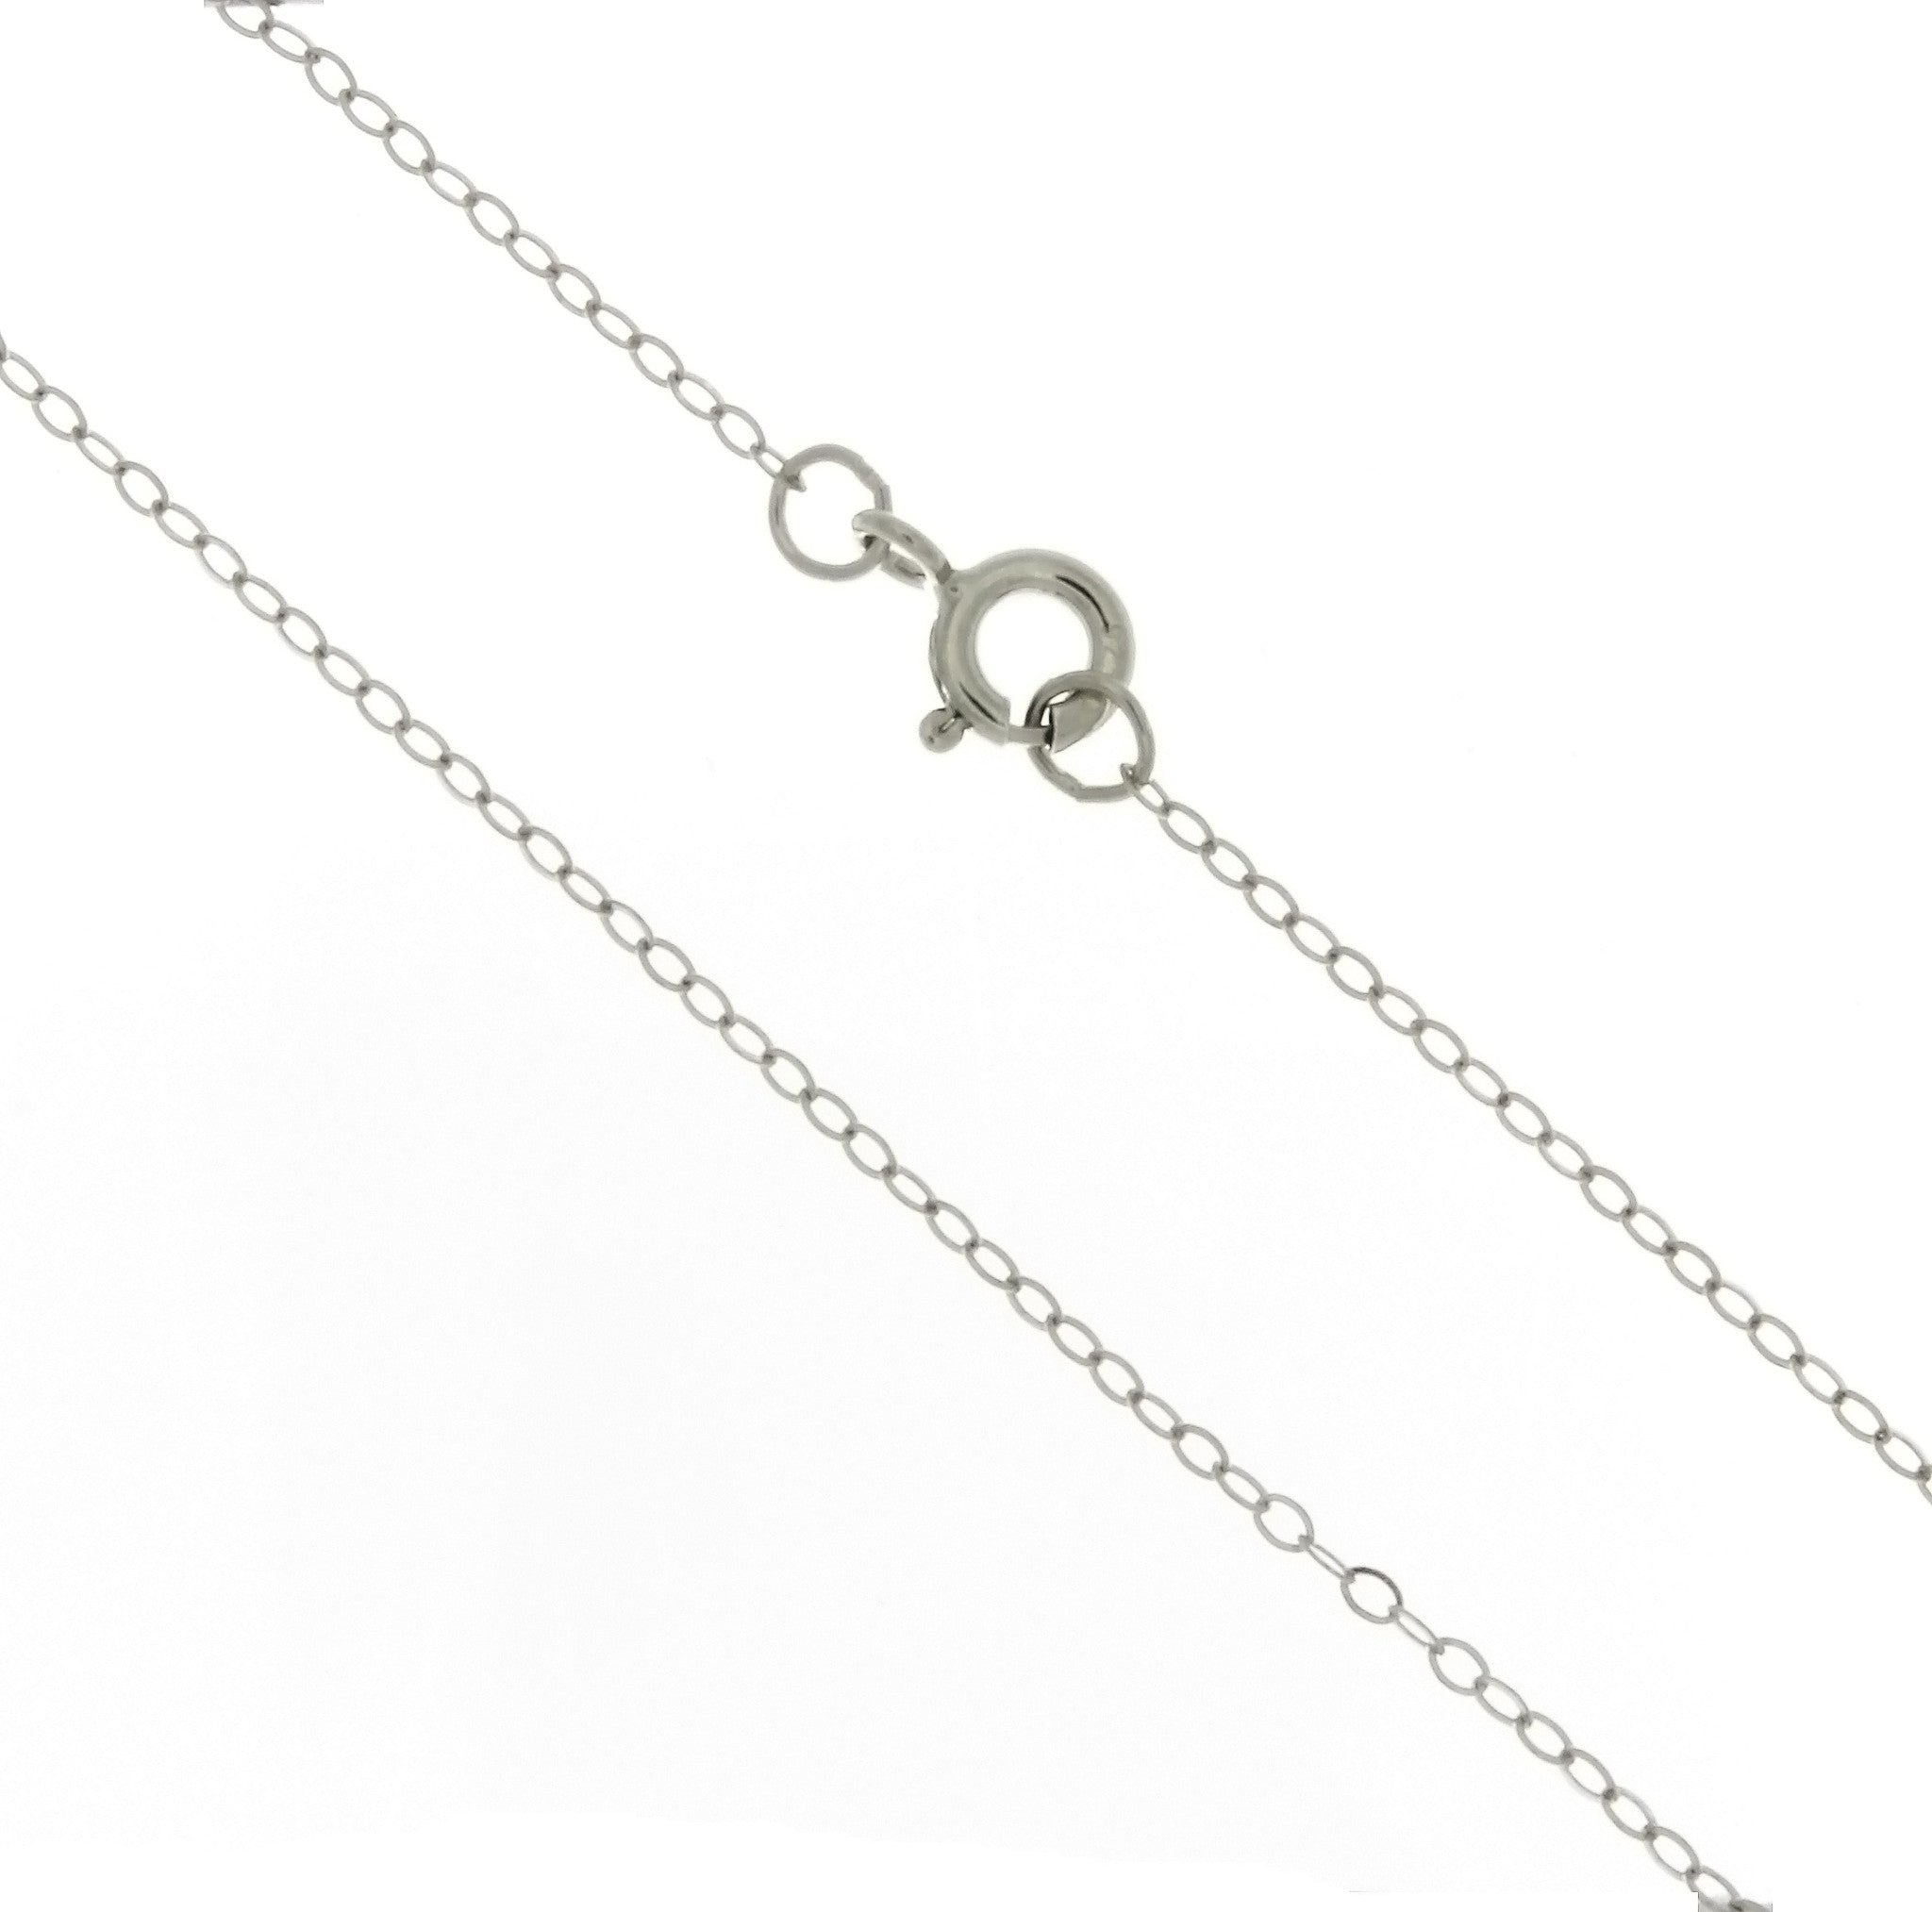 CHAIN NECKLACE CABLE SS 1 MM X 24 IN